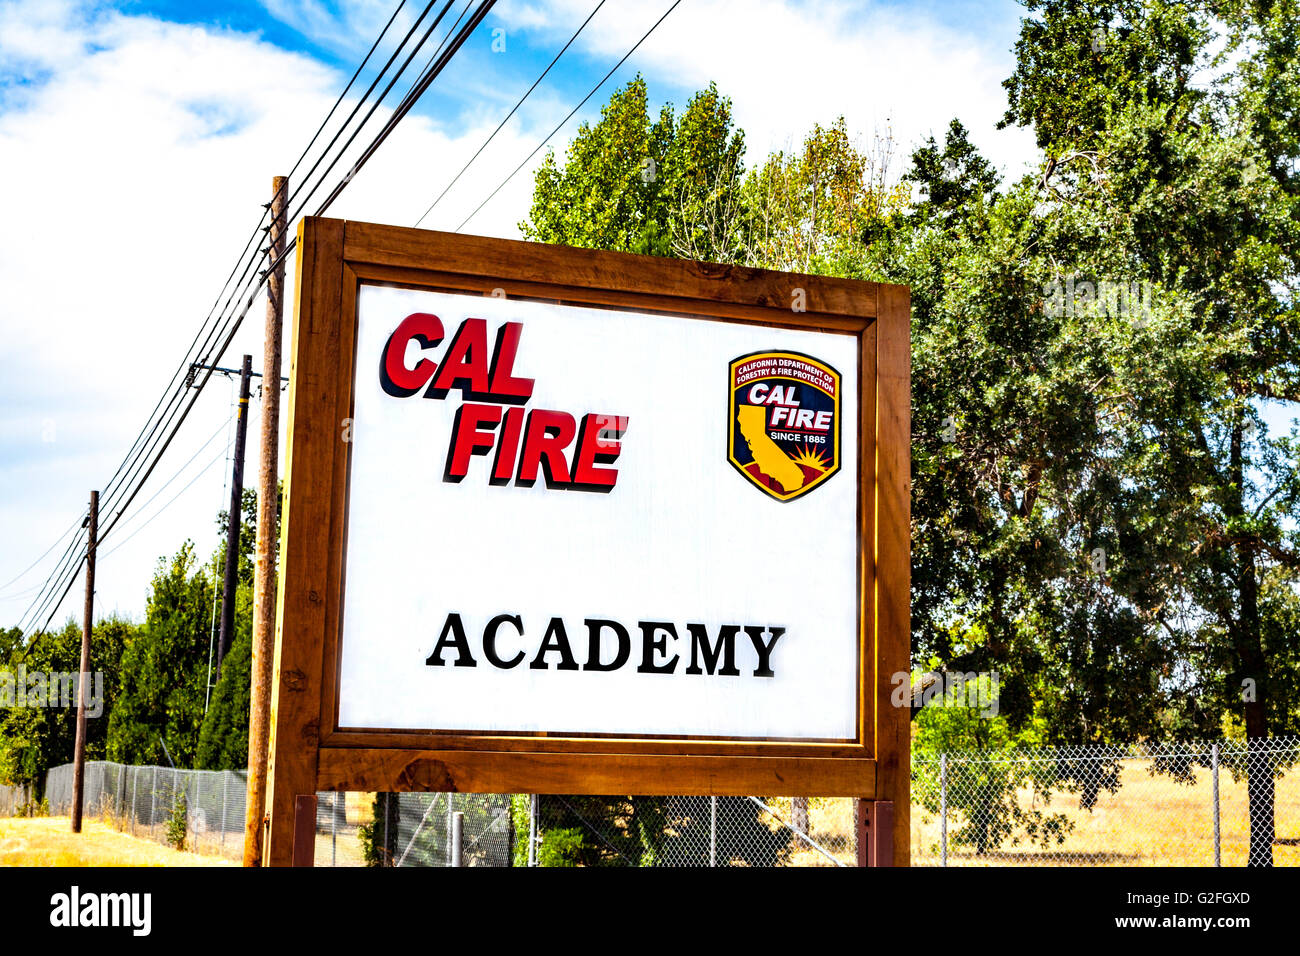 The California Department of Forestry and Fire Protection (Cal Fire) Academy in Ione California - Stock Image